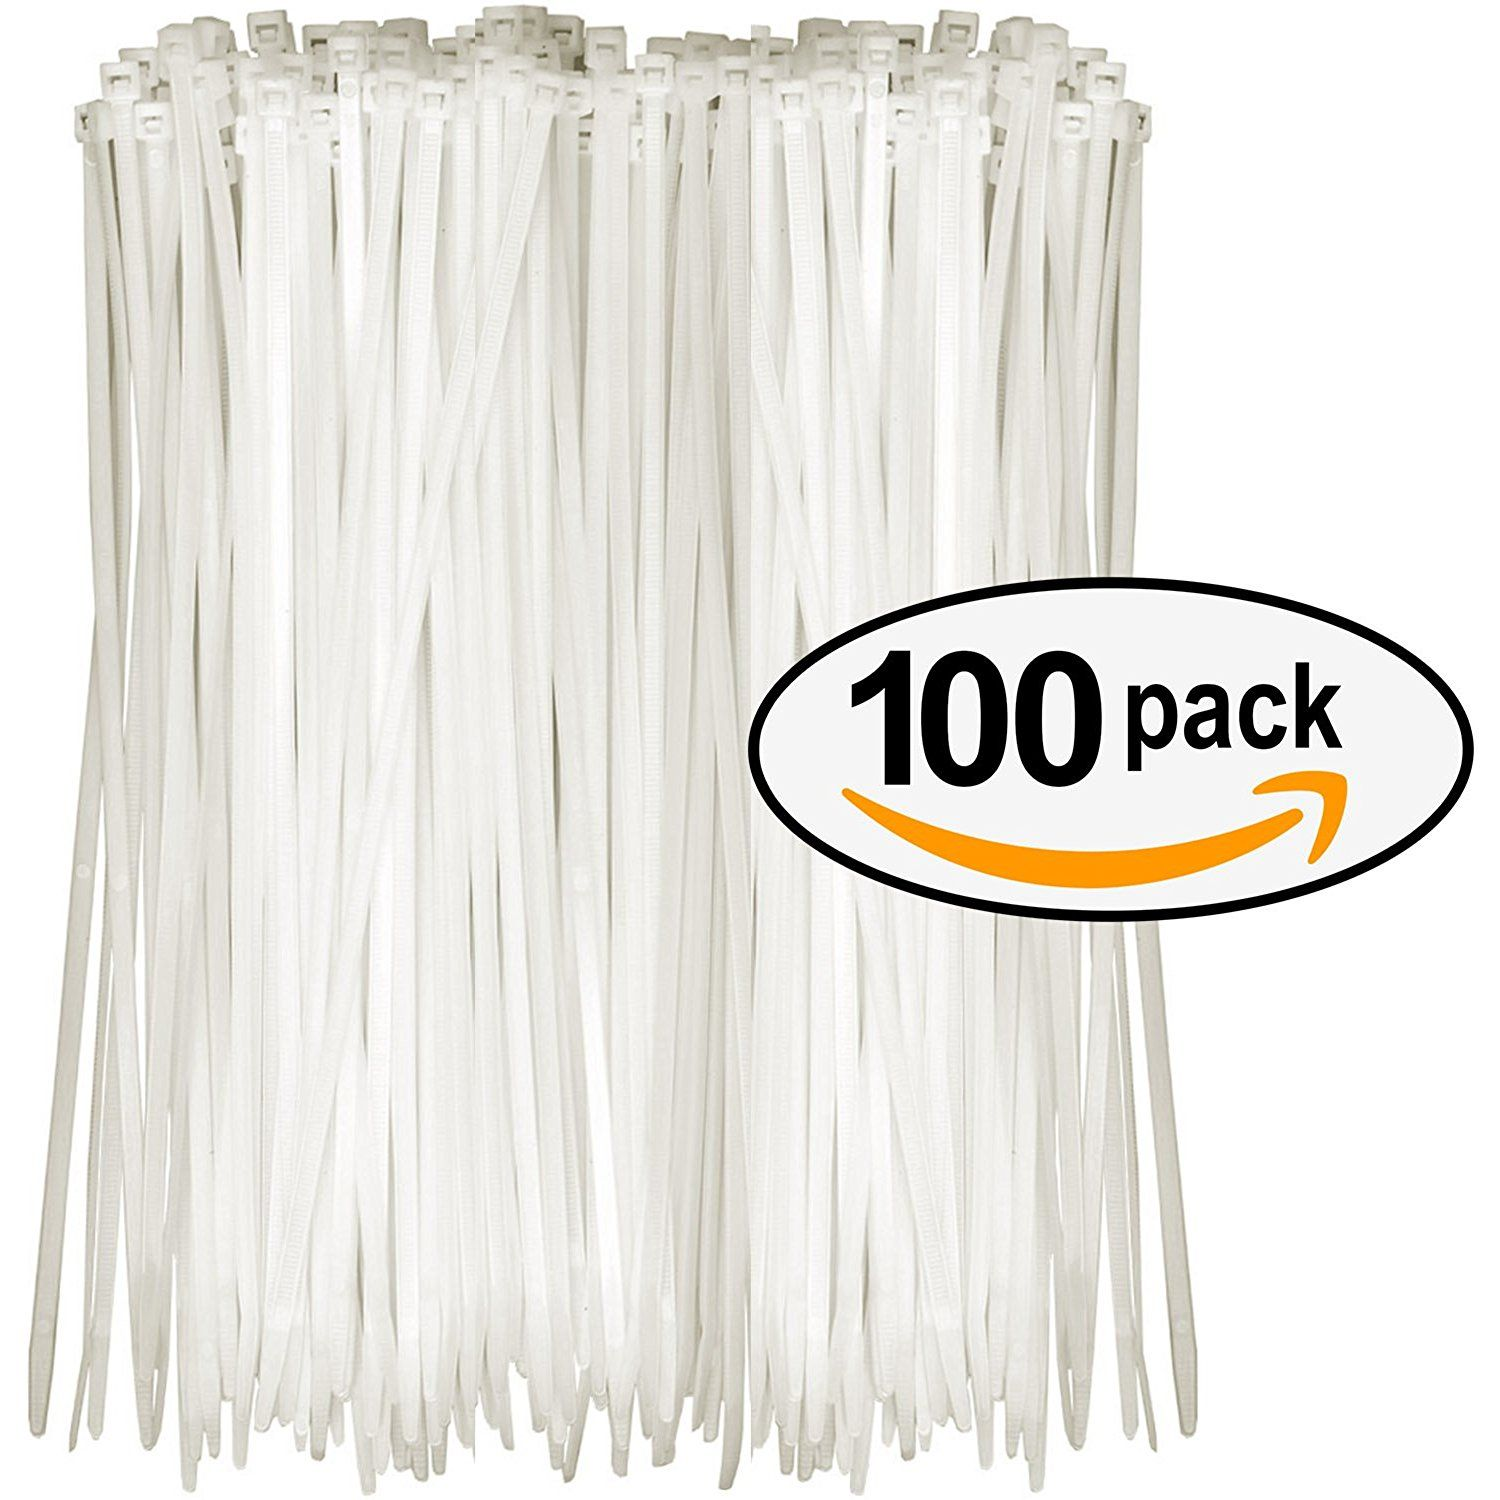 Tarvol Nylon Zip Ties (Pack of 100) 8 Inch with Self Locking Cable ...